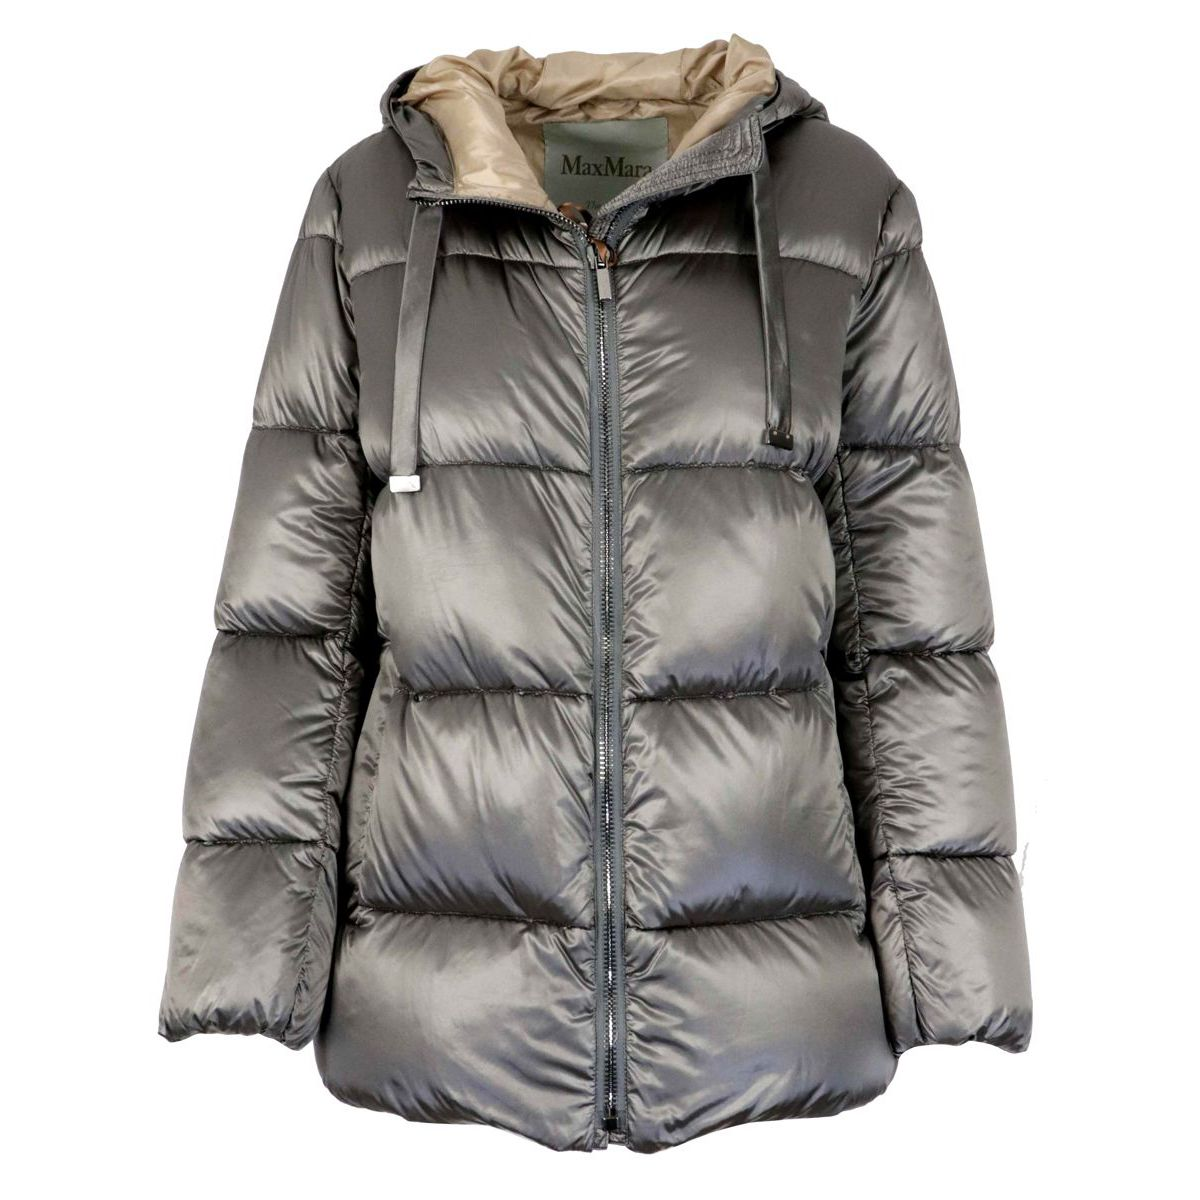 Spacey glossy effect down jacket Smoke gray MAX MARA THE CUBE